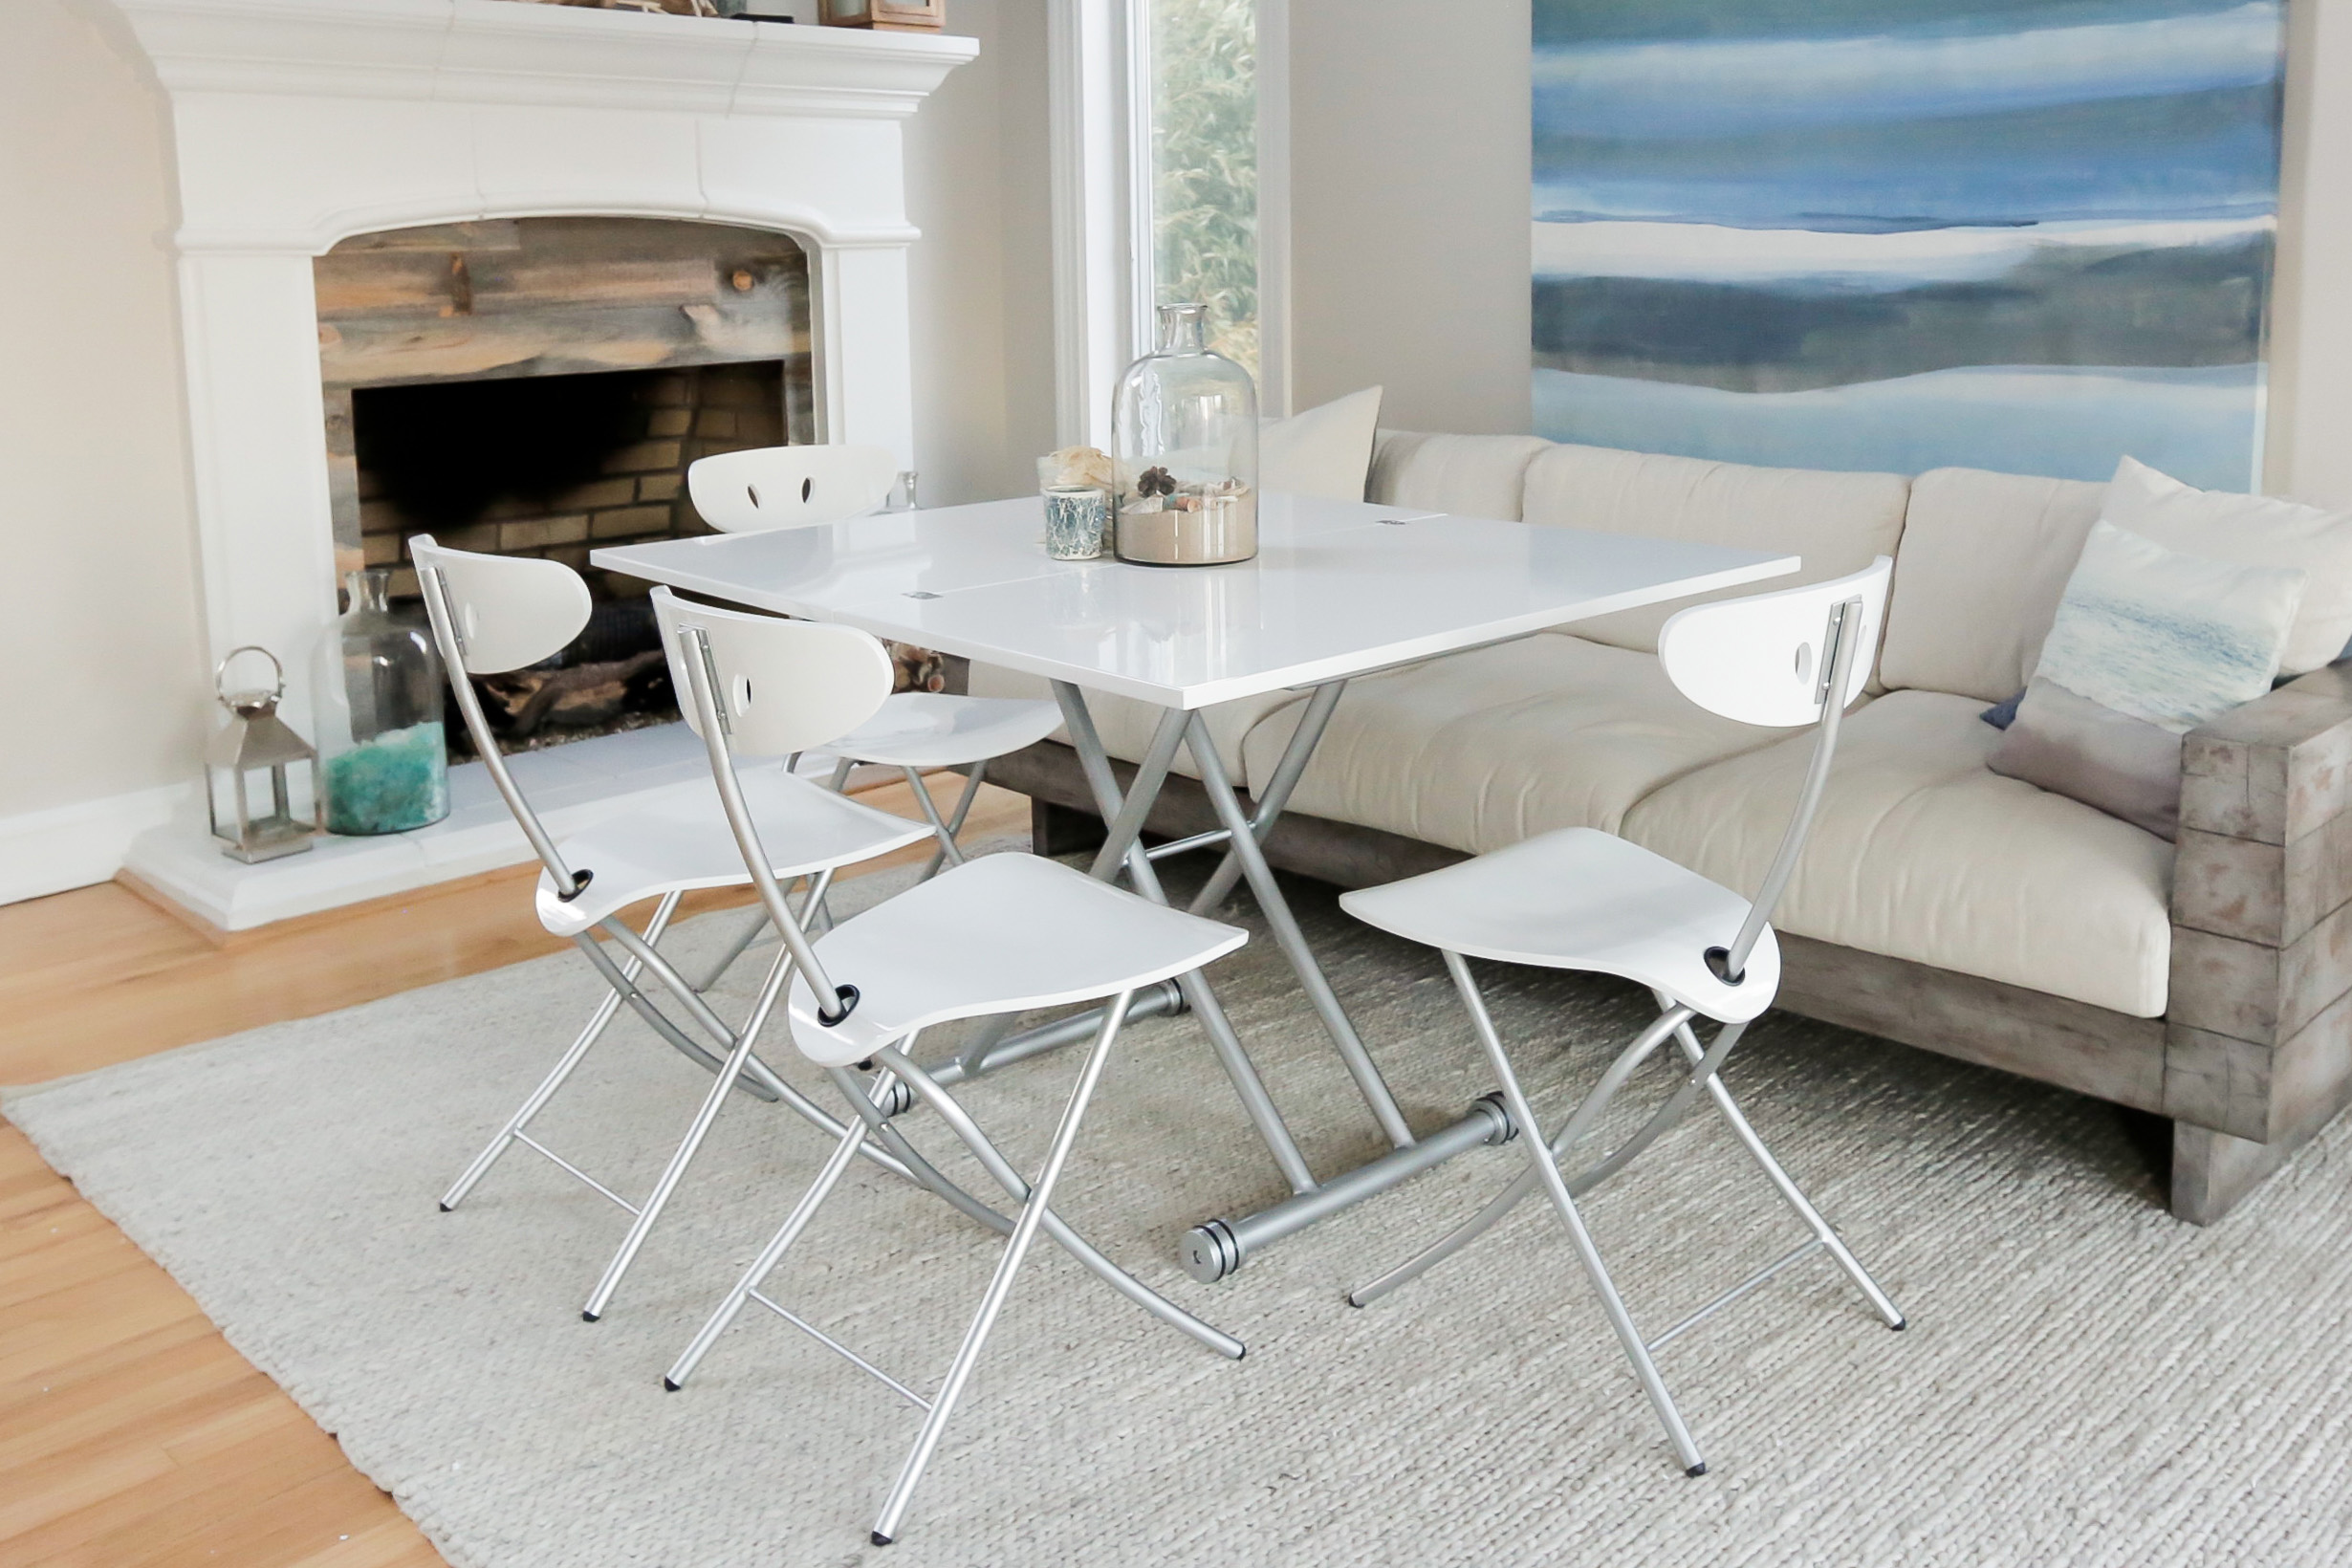 Transforming X Coffee and Dining Table in High Gloss White Finish